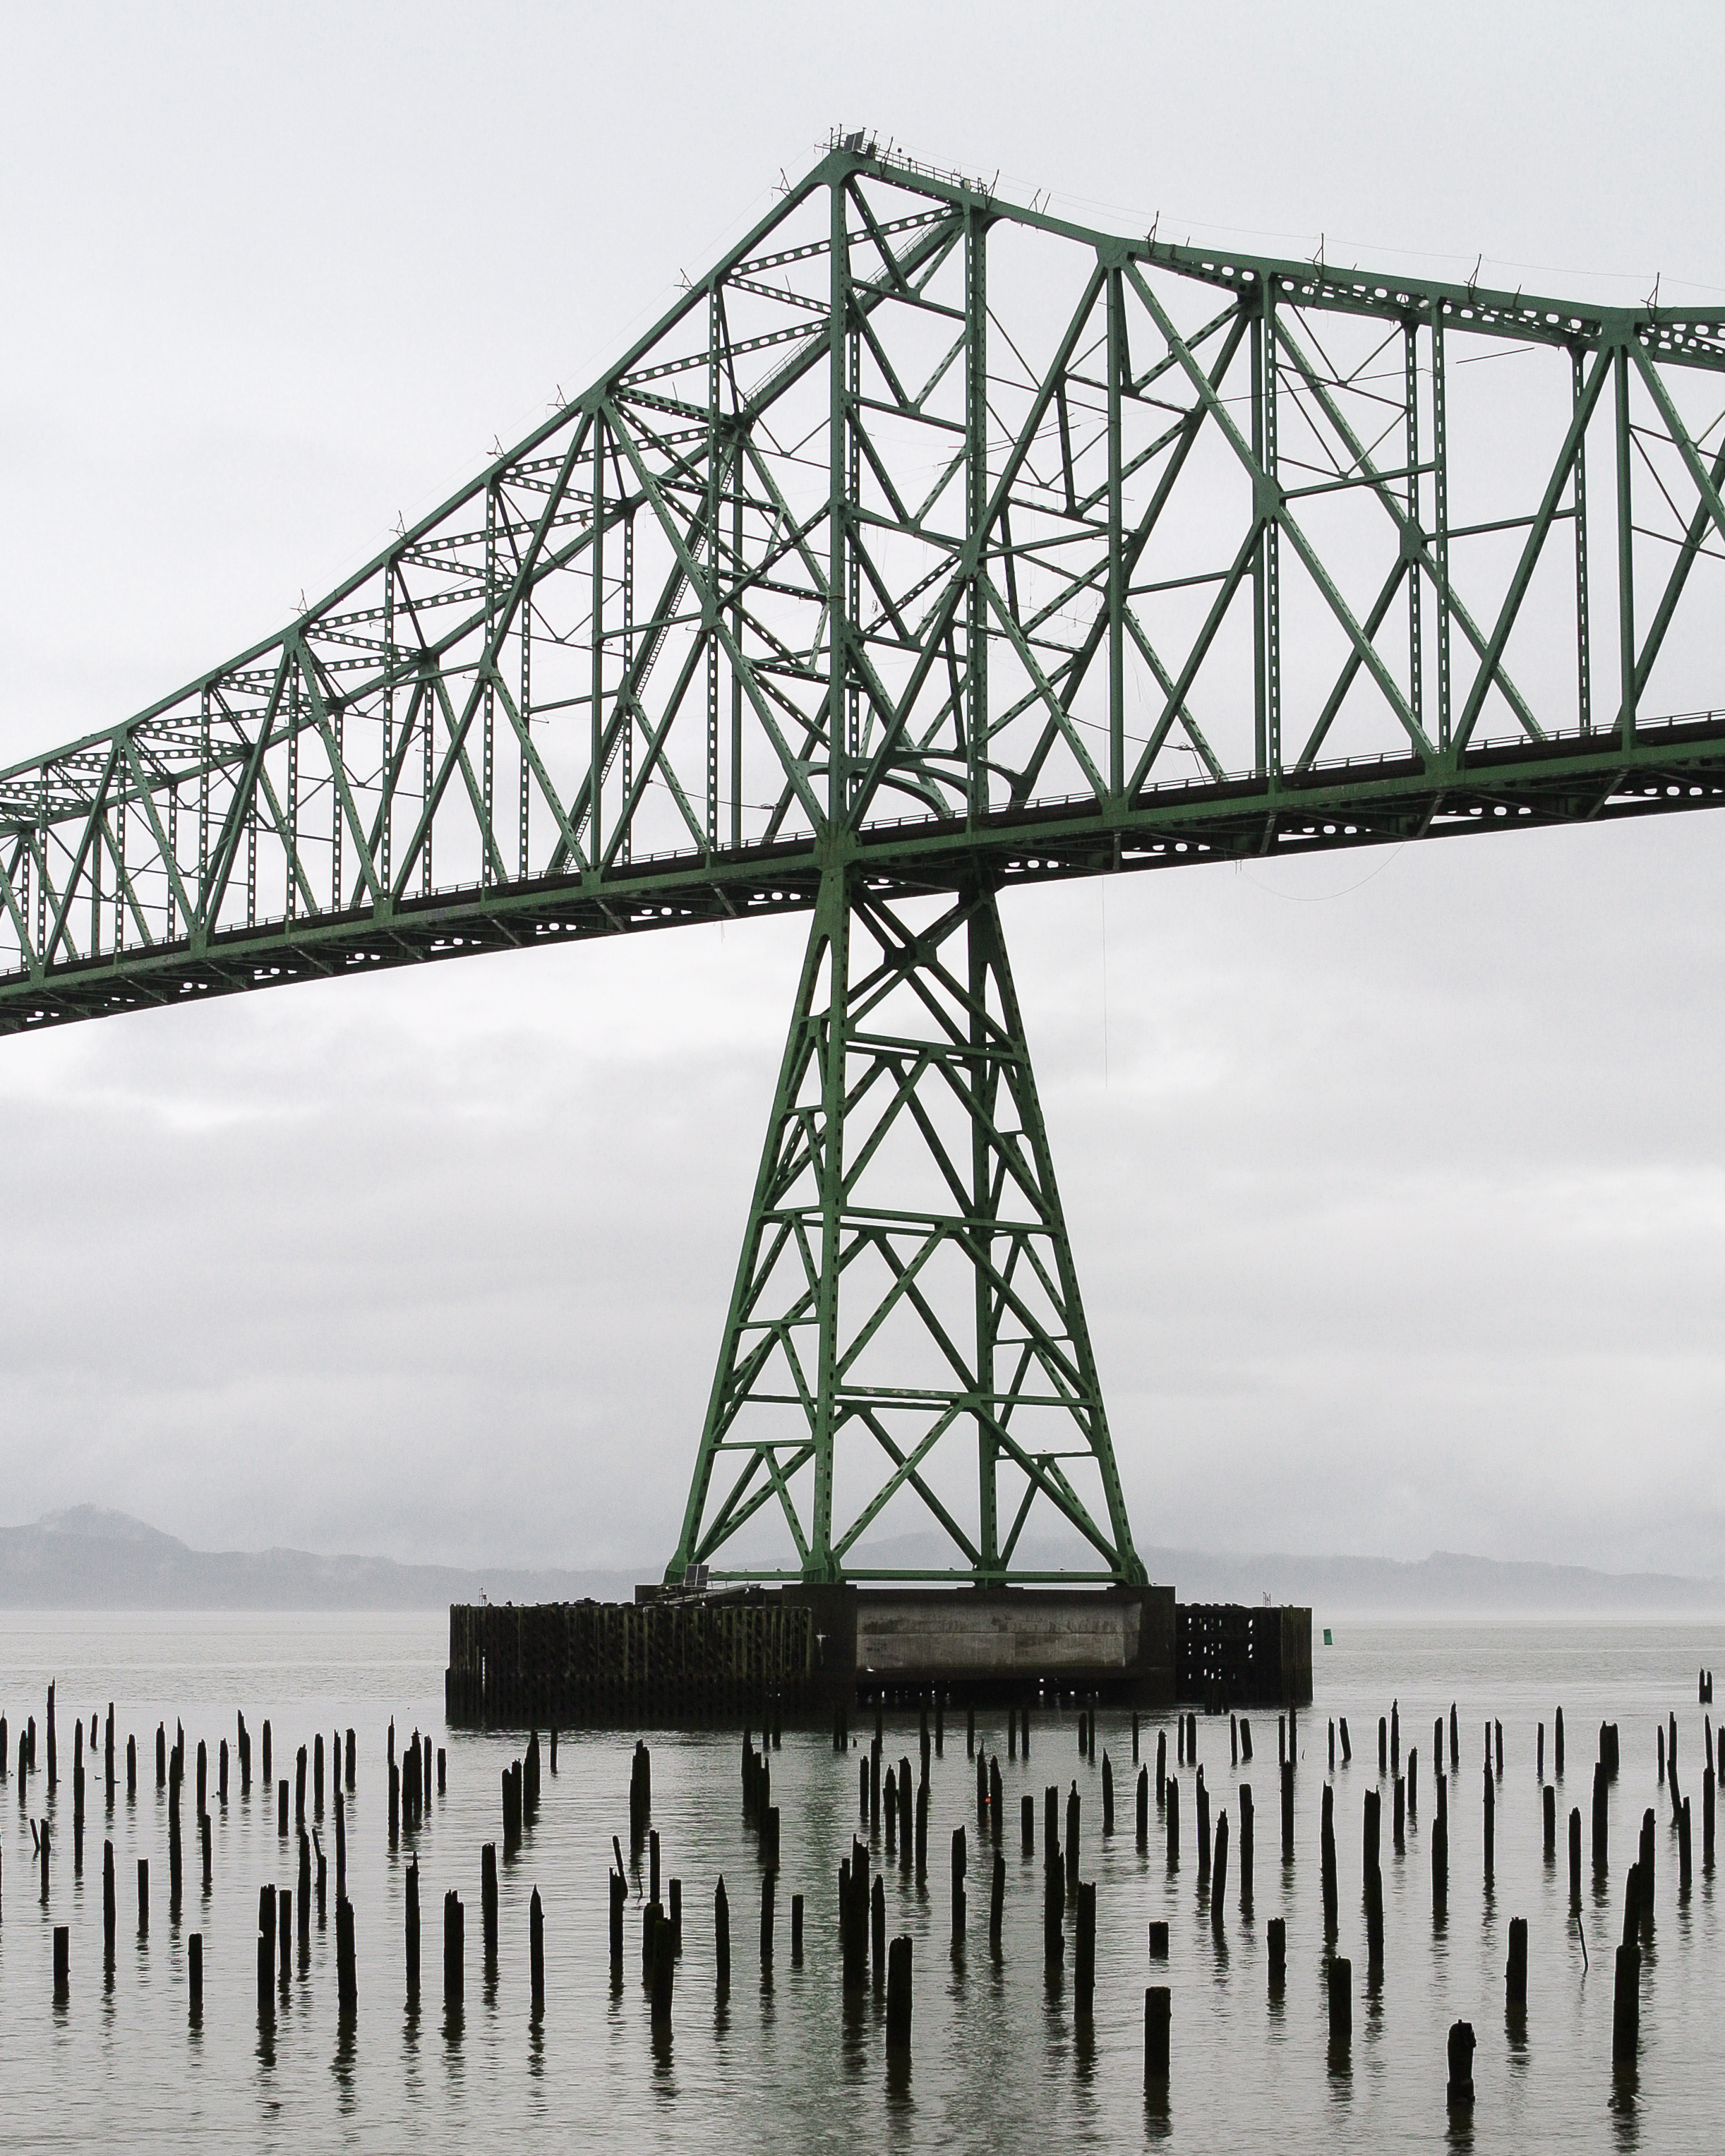 Astoria-Megler Bridge - Astoria, OR